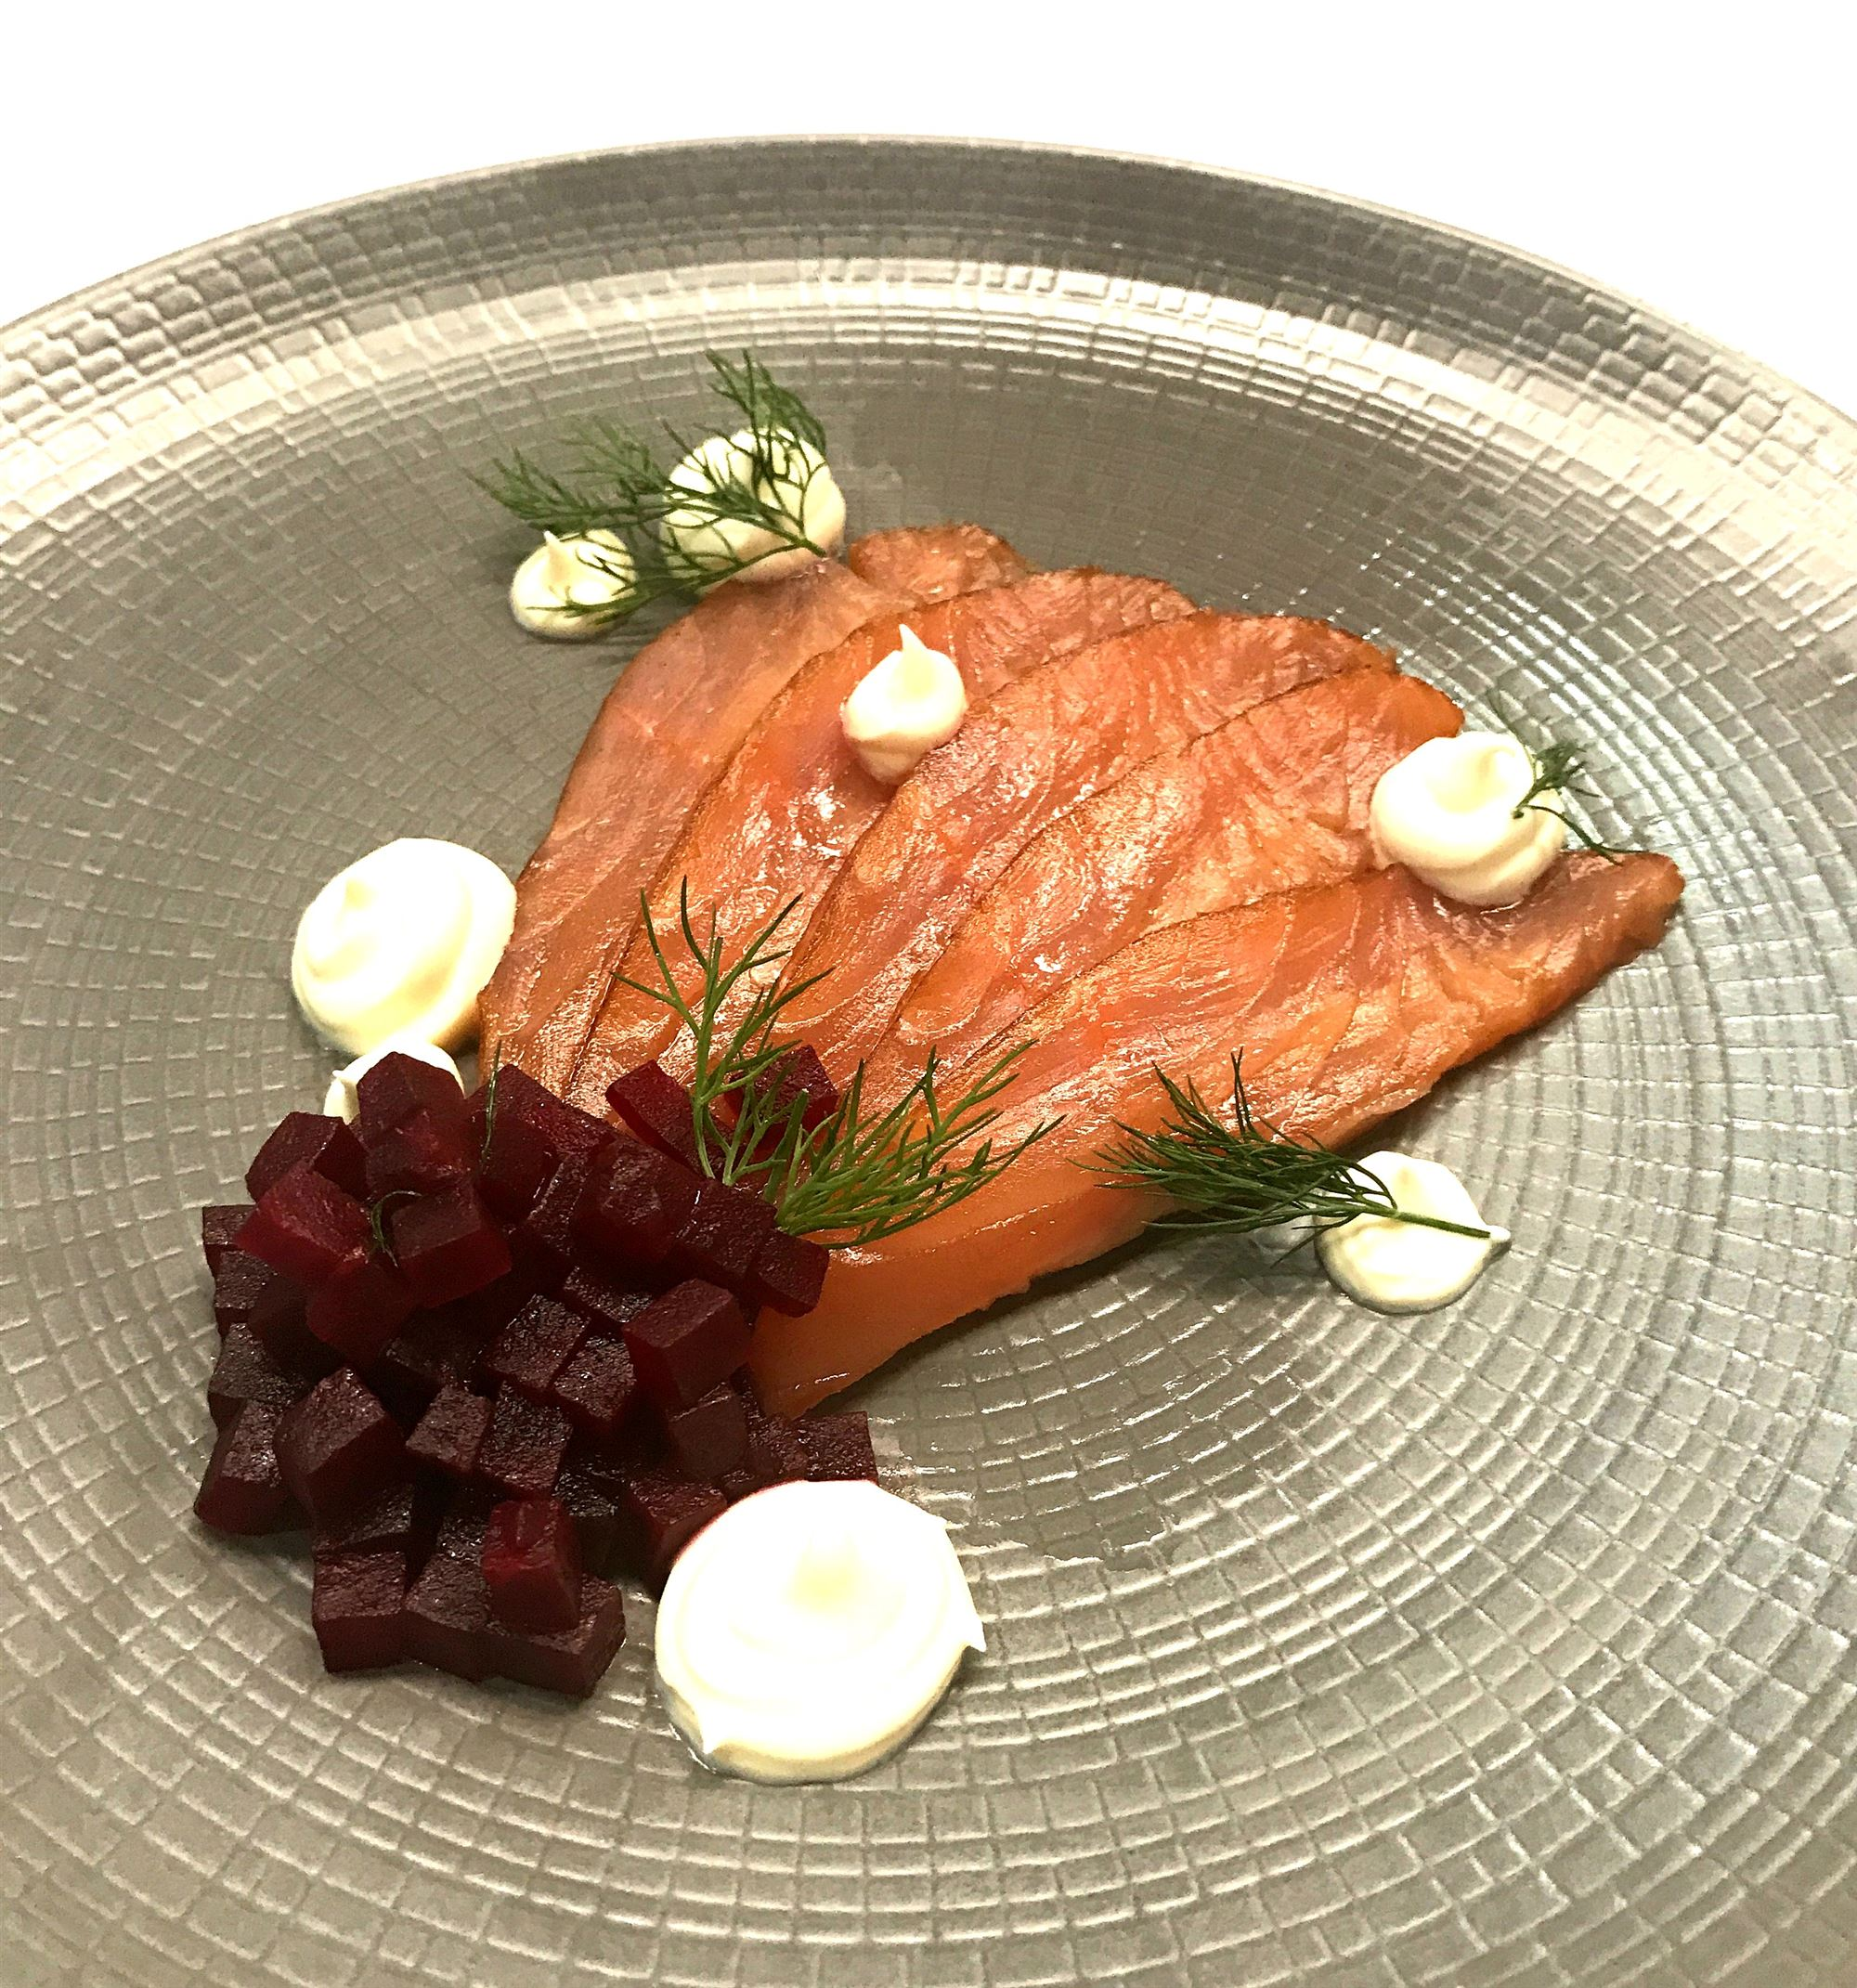 Whisky Cured Salmon and beetroot salad